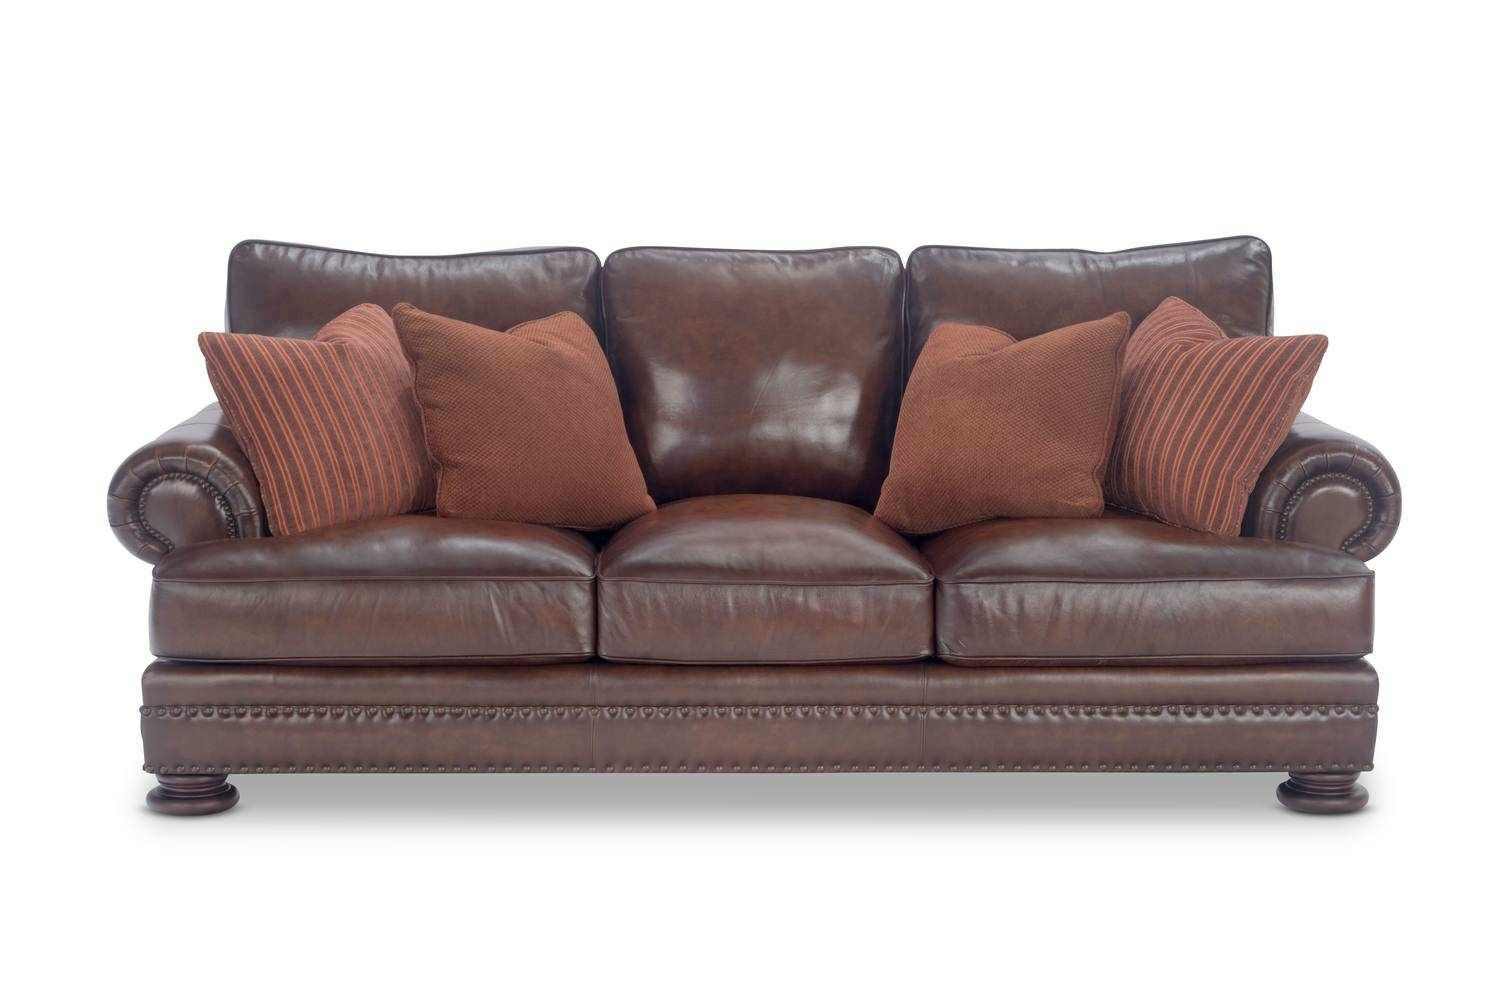 98″ Foster Elite Leather Sofabernhardt | Hom Furniture throughout Foster Leather Sofas (Image 5 of 15)